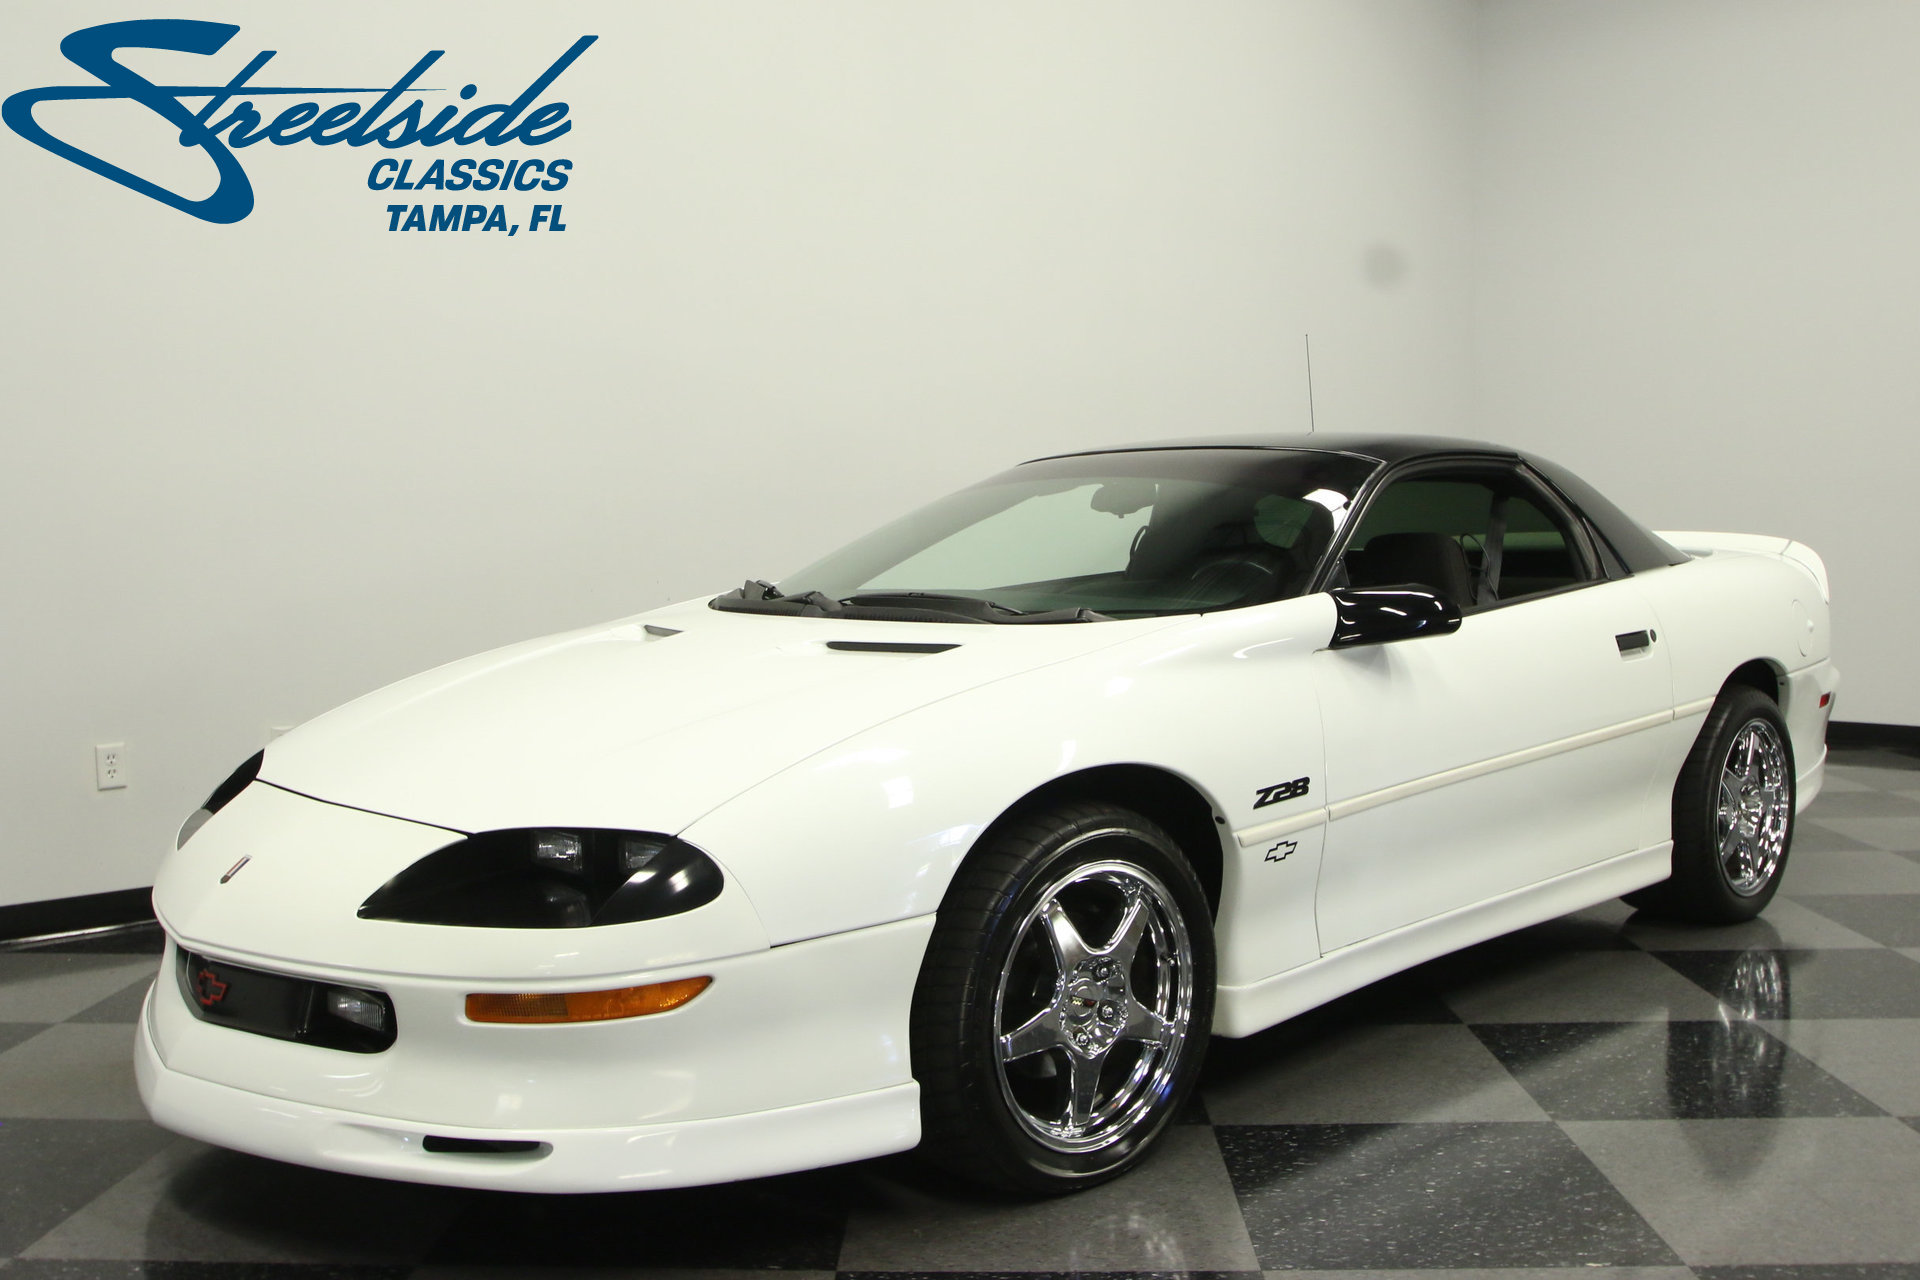 For Sale: 1993 Chevrolet Camaro. Spincar view. Play Video